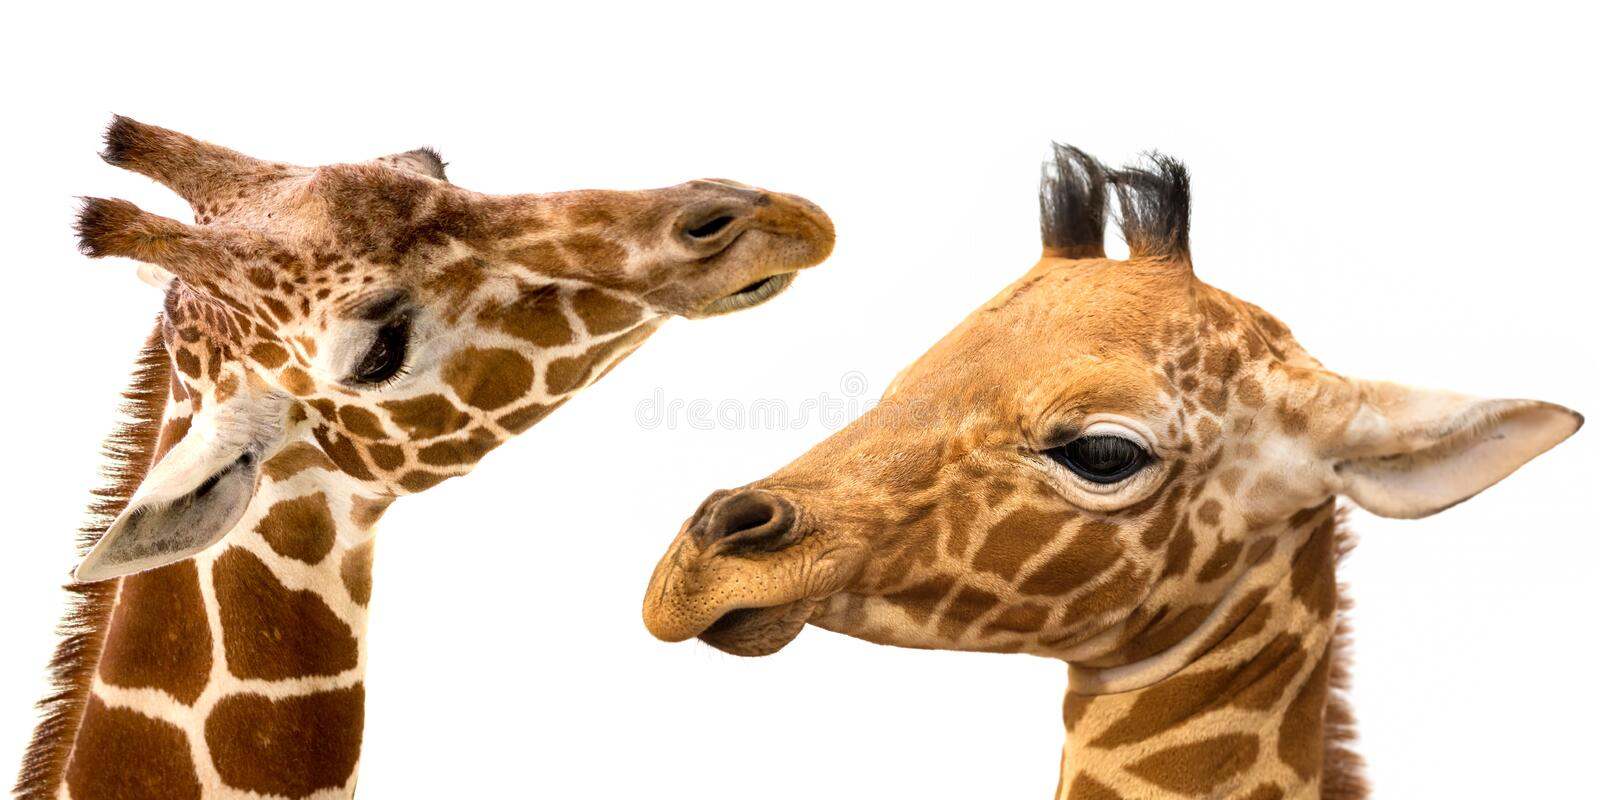 Giraffes portrait on white background royalty free stock photo